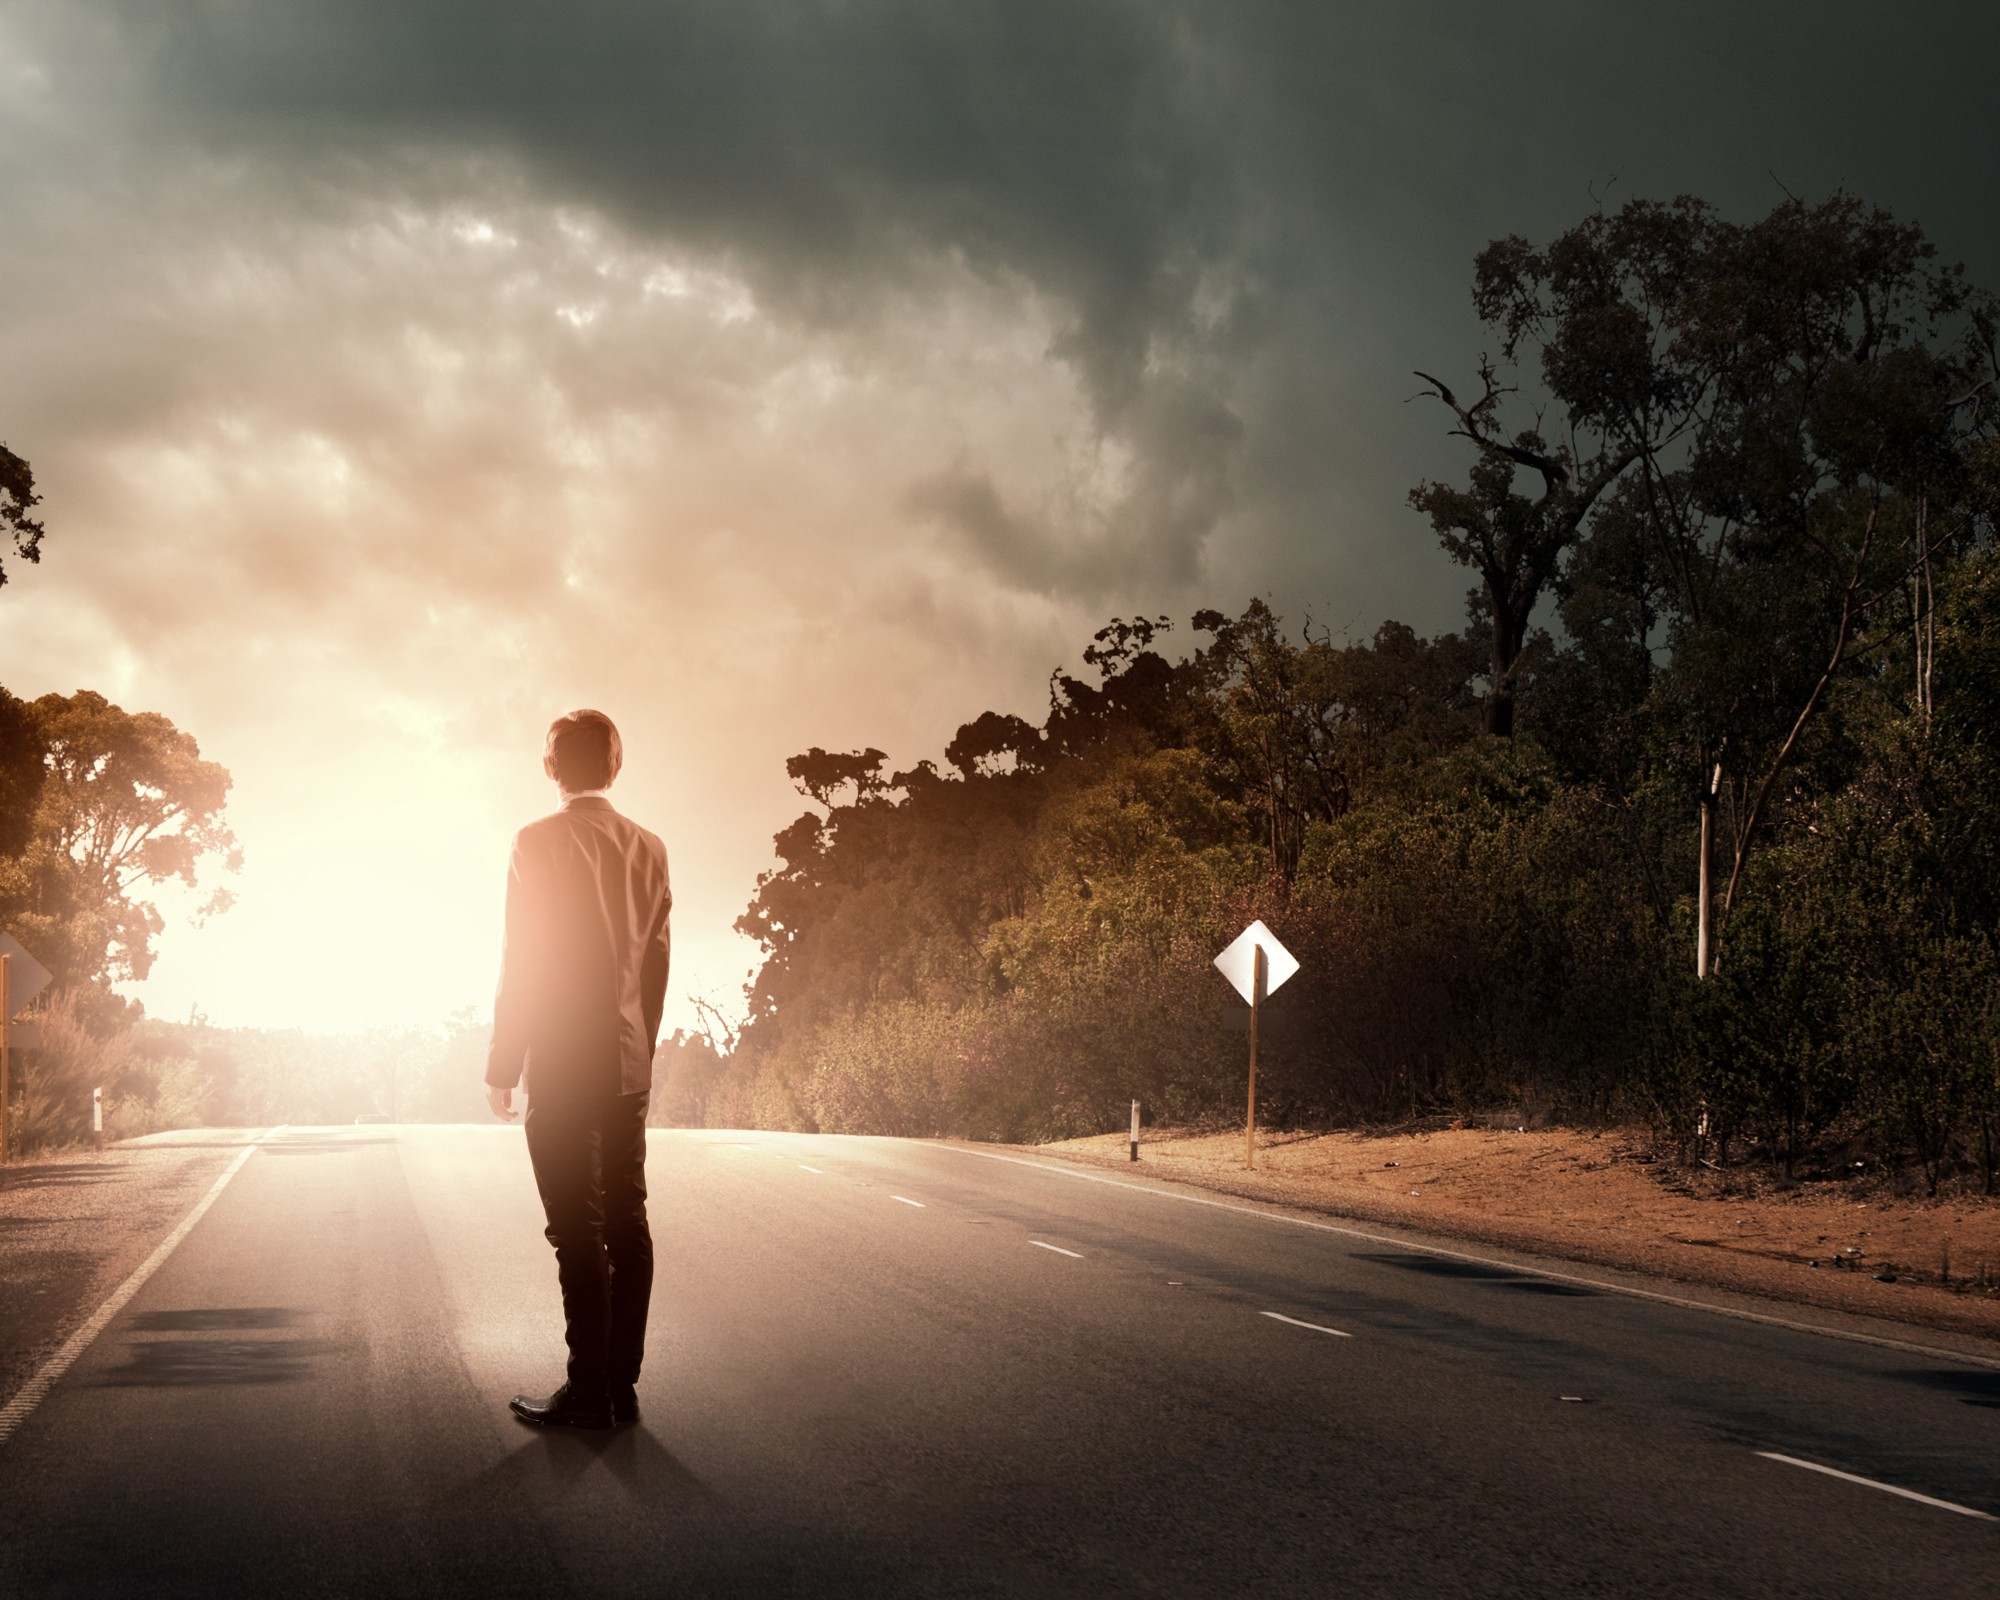 A man dressed in a suit stands on a road looking to the sunrise in the distance.